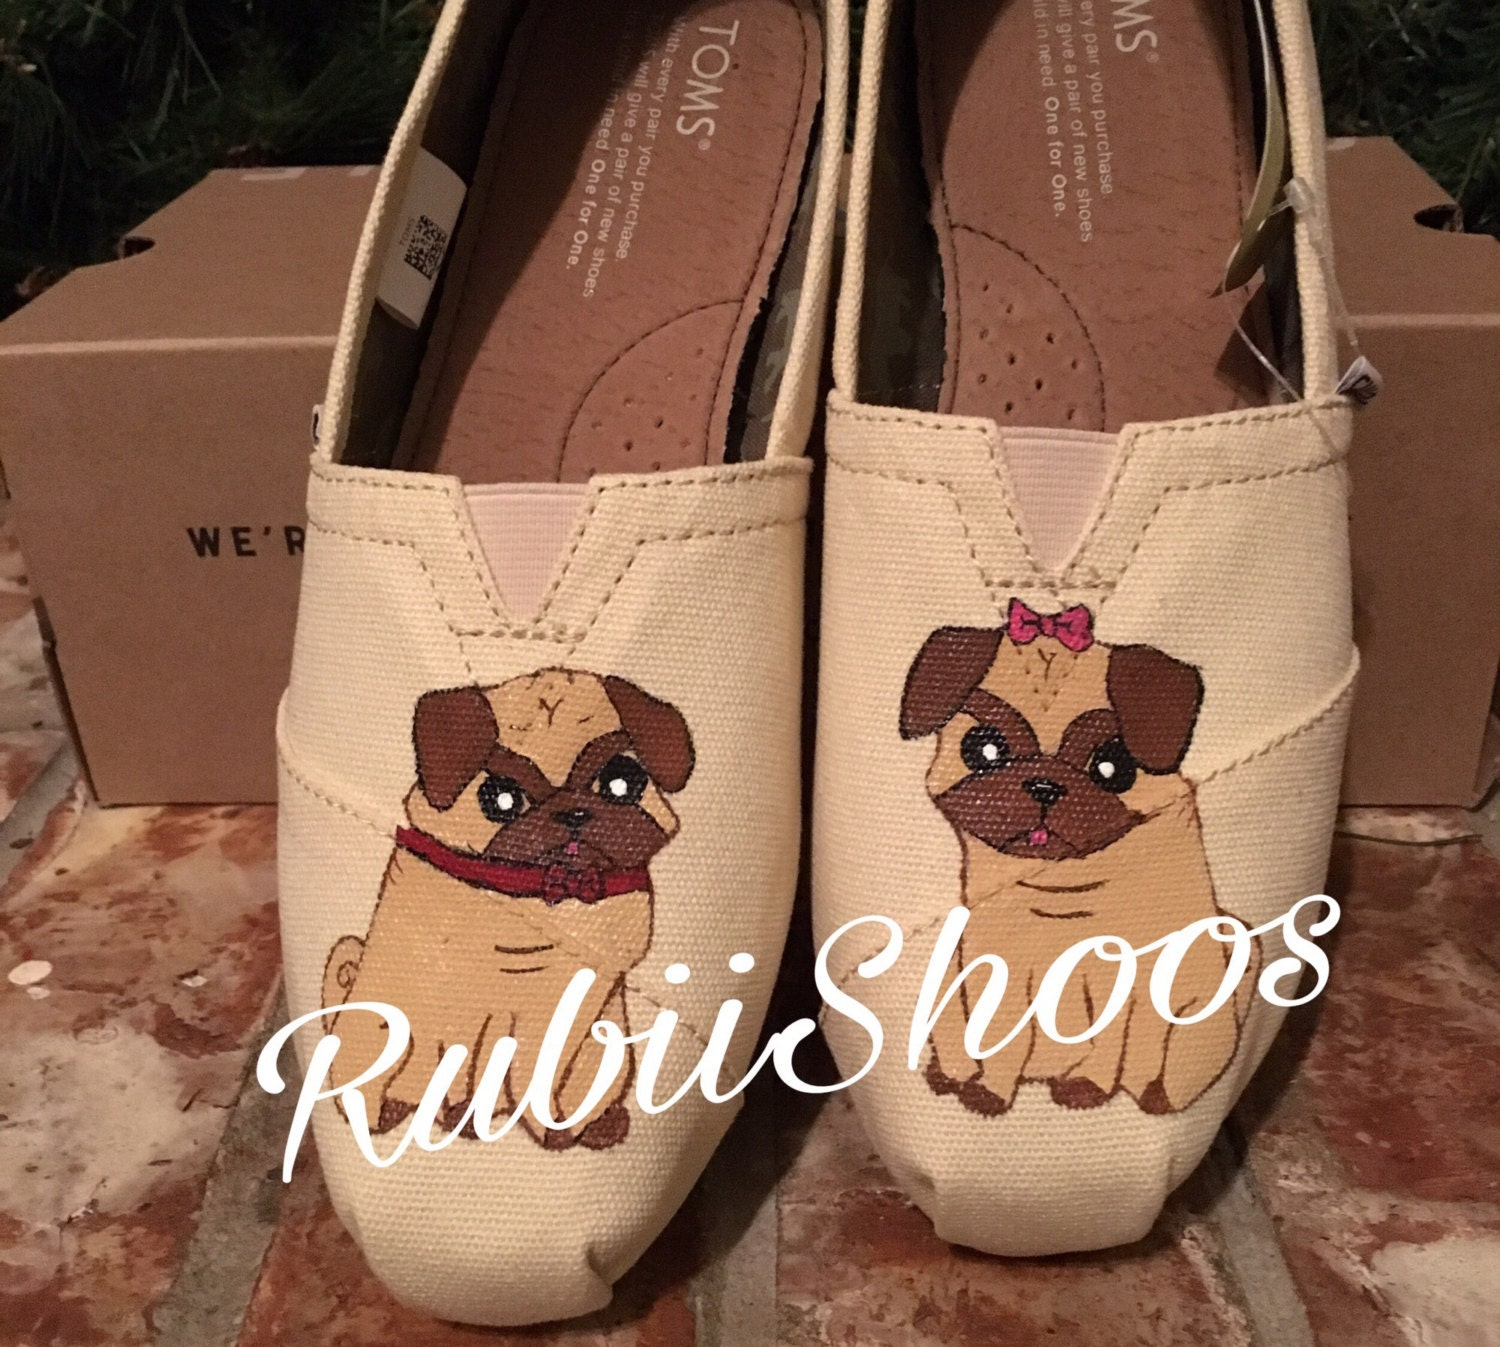 wedding toms toms wedding shoes RubiiShoos Original Pugs Natural Toms Pug Life Pug Shoes Dog Lover Gift Veterinarian Gift Puppy Love Wedding Toms Hand Painted